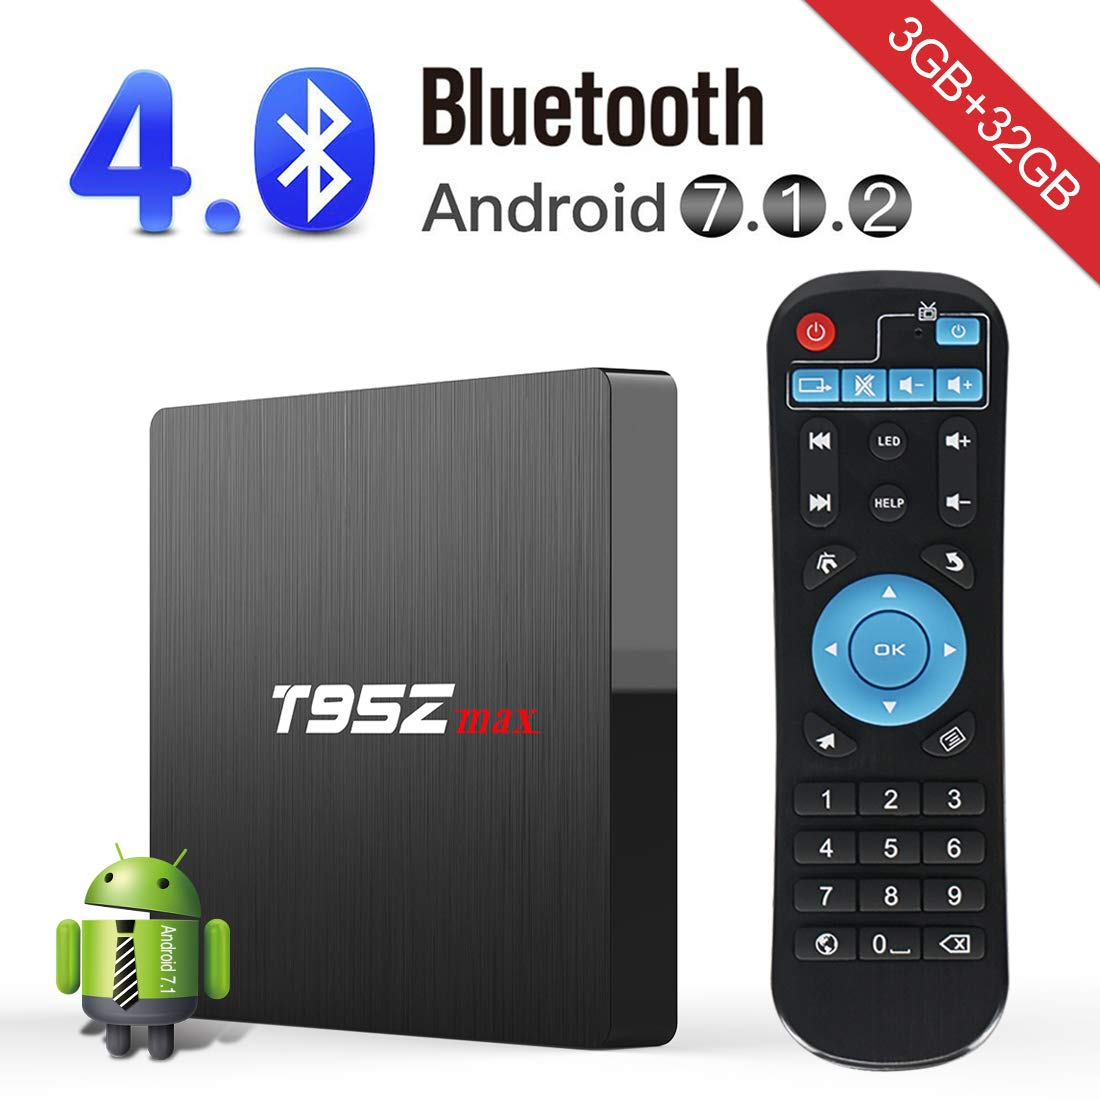 Android TV Box,Kingbox T95Z Max Android 7.1 Smart TV Box 3GB+32GB Amlogic S912 Octa-core A53 2.4/5G Wi-Fi H.265 3D 4K Bluetooth Set Top Box